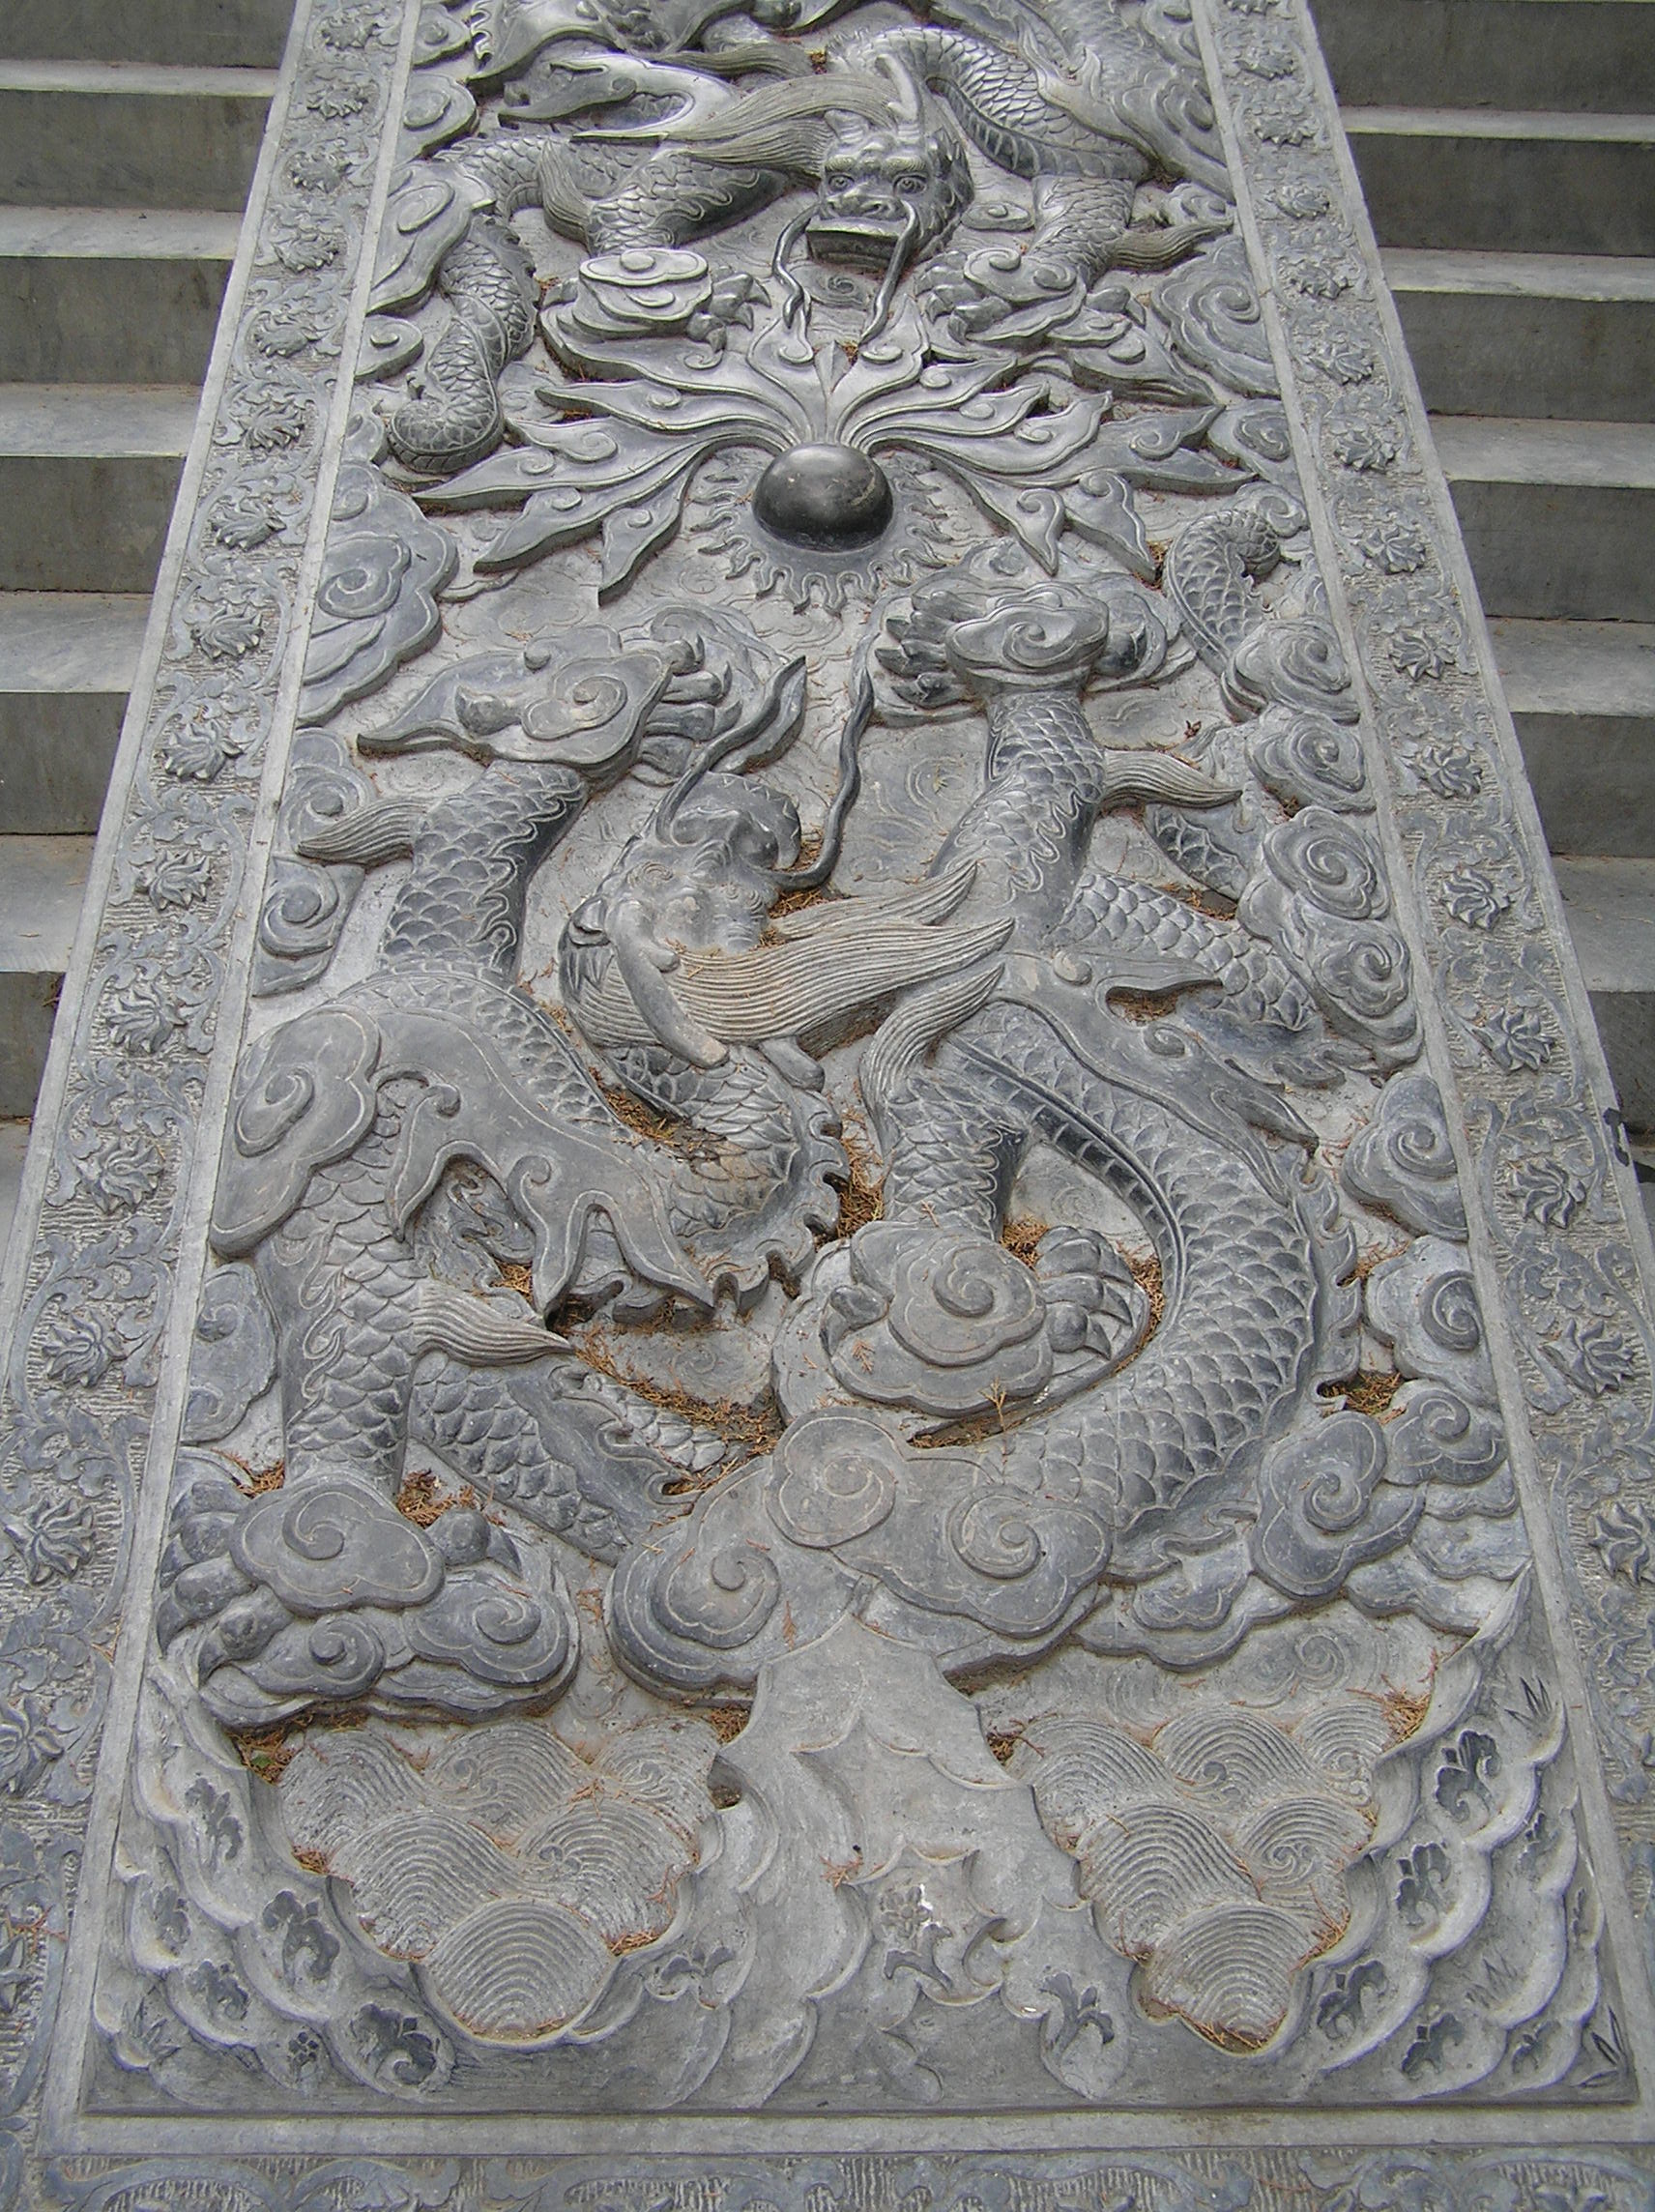 File:Dragon carving.JPG - Wikimedia Commons